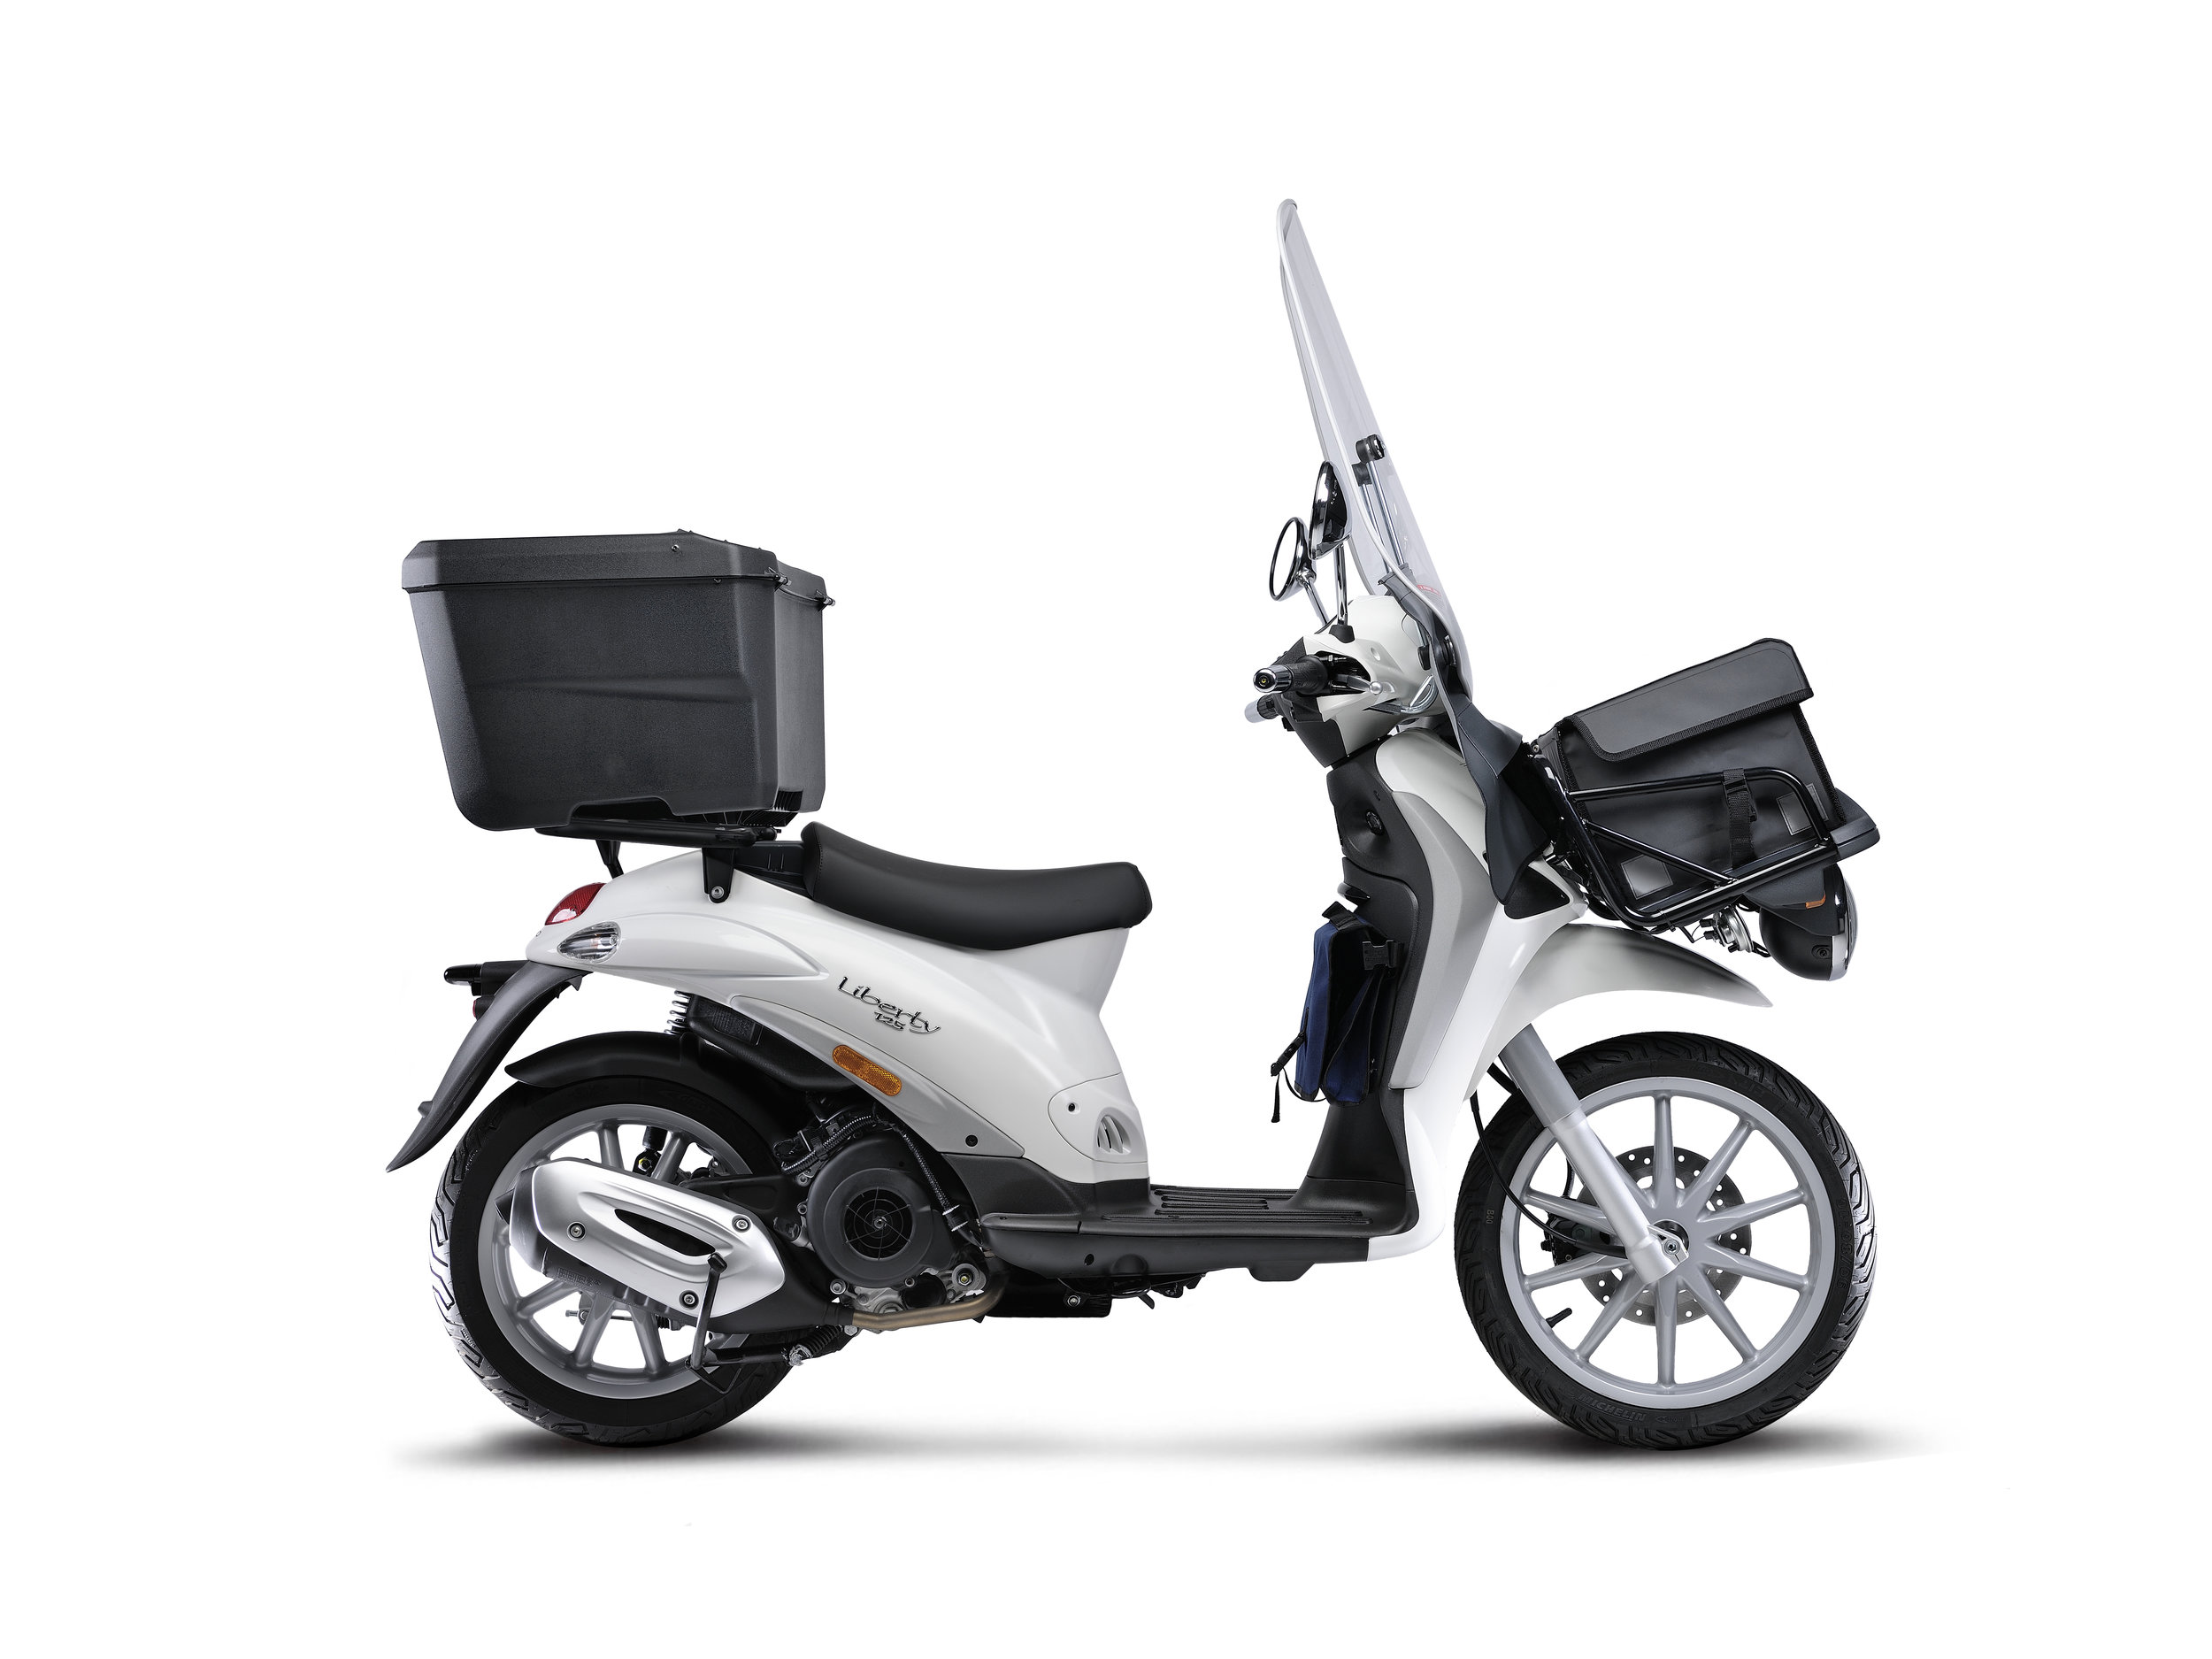 Piaggio Liberty delivery 125 Side Dx Double Rack Full Optional.jpg